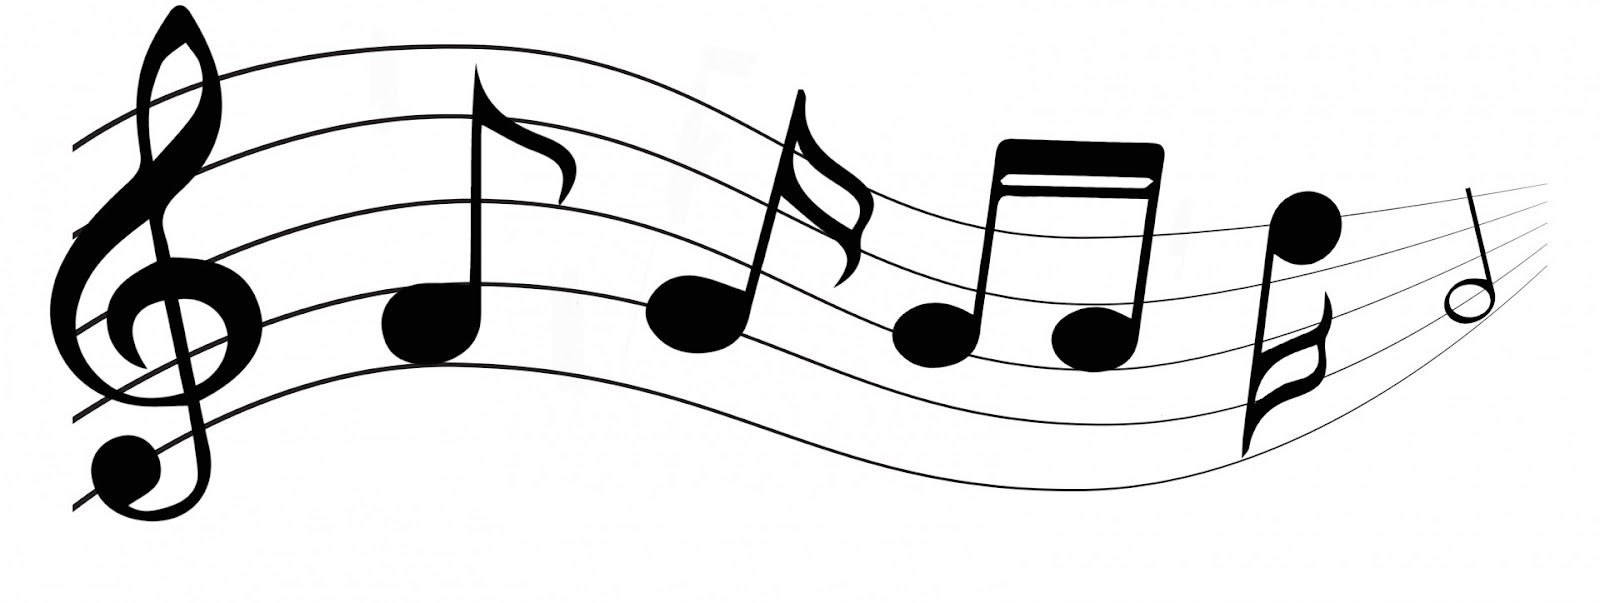 ... Musical Notes ...